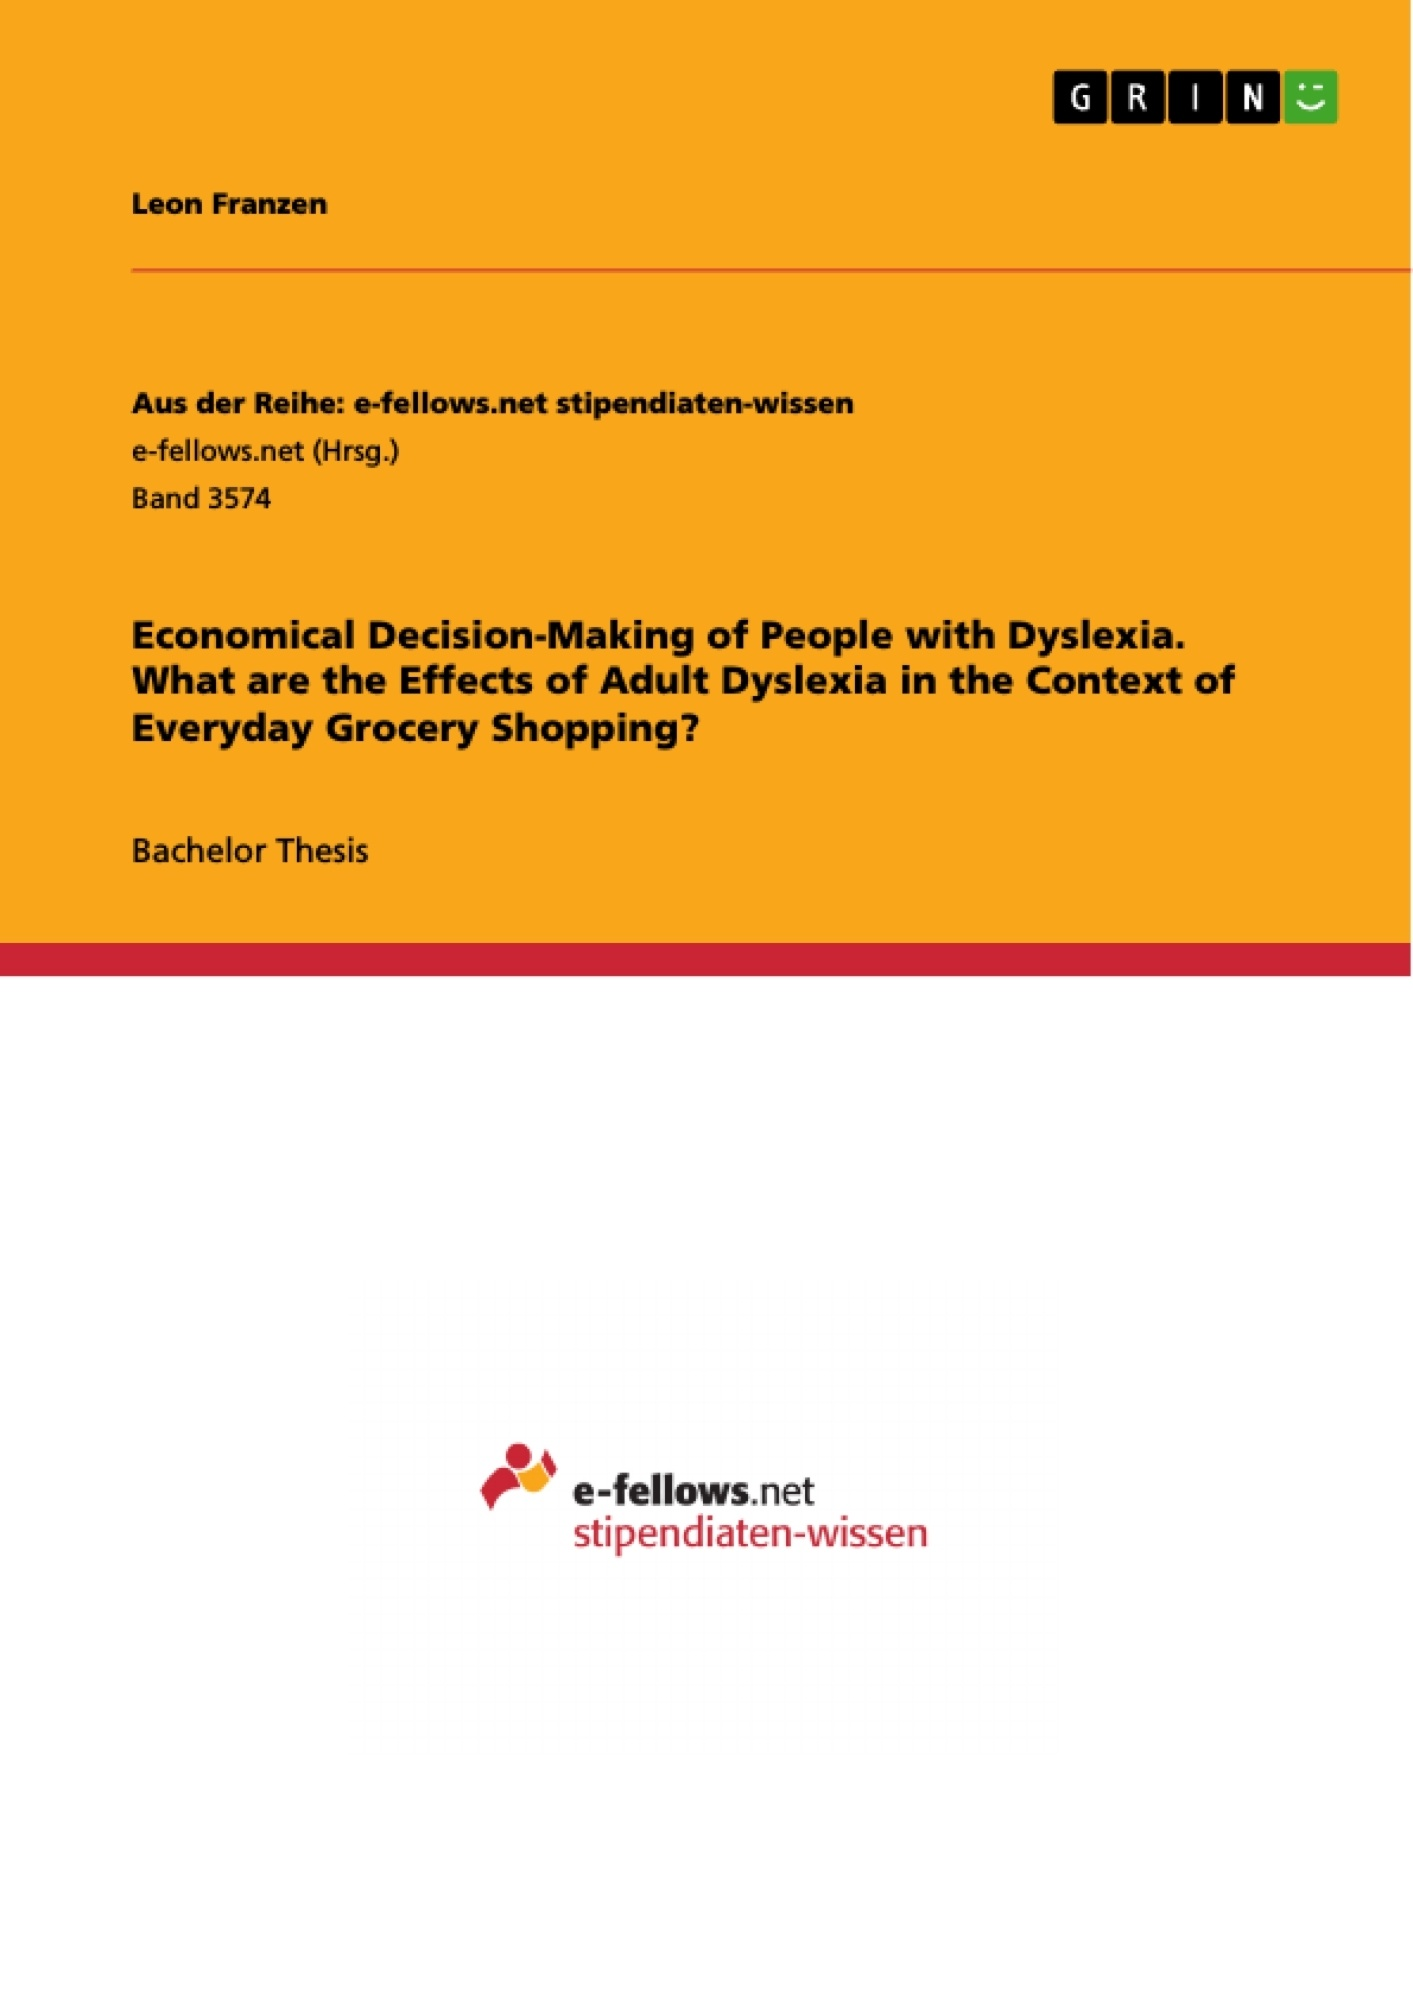 Title: Economical Decision-Making of People with Dyslexia. What are the Effects of Adult Dyslexia in the Context of Everyday Grocery Shopping?